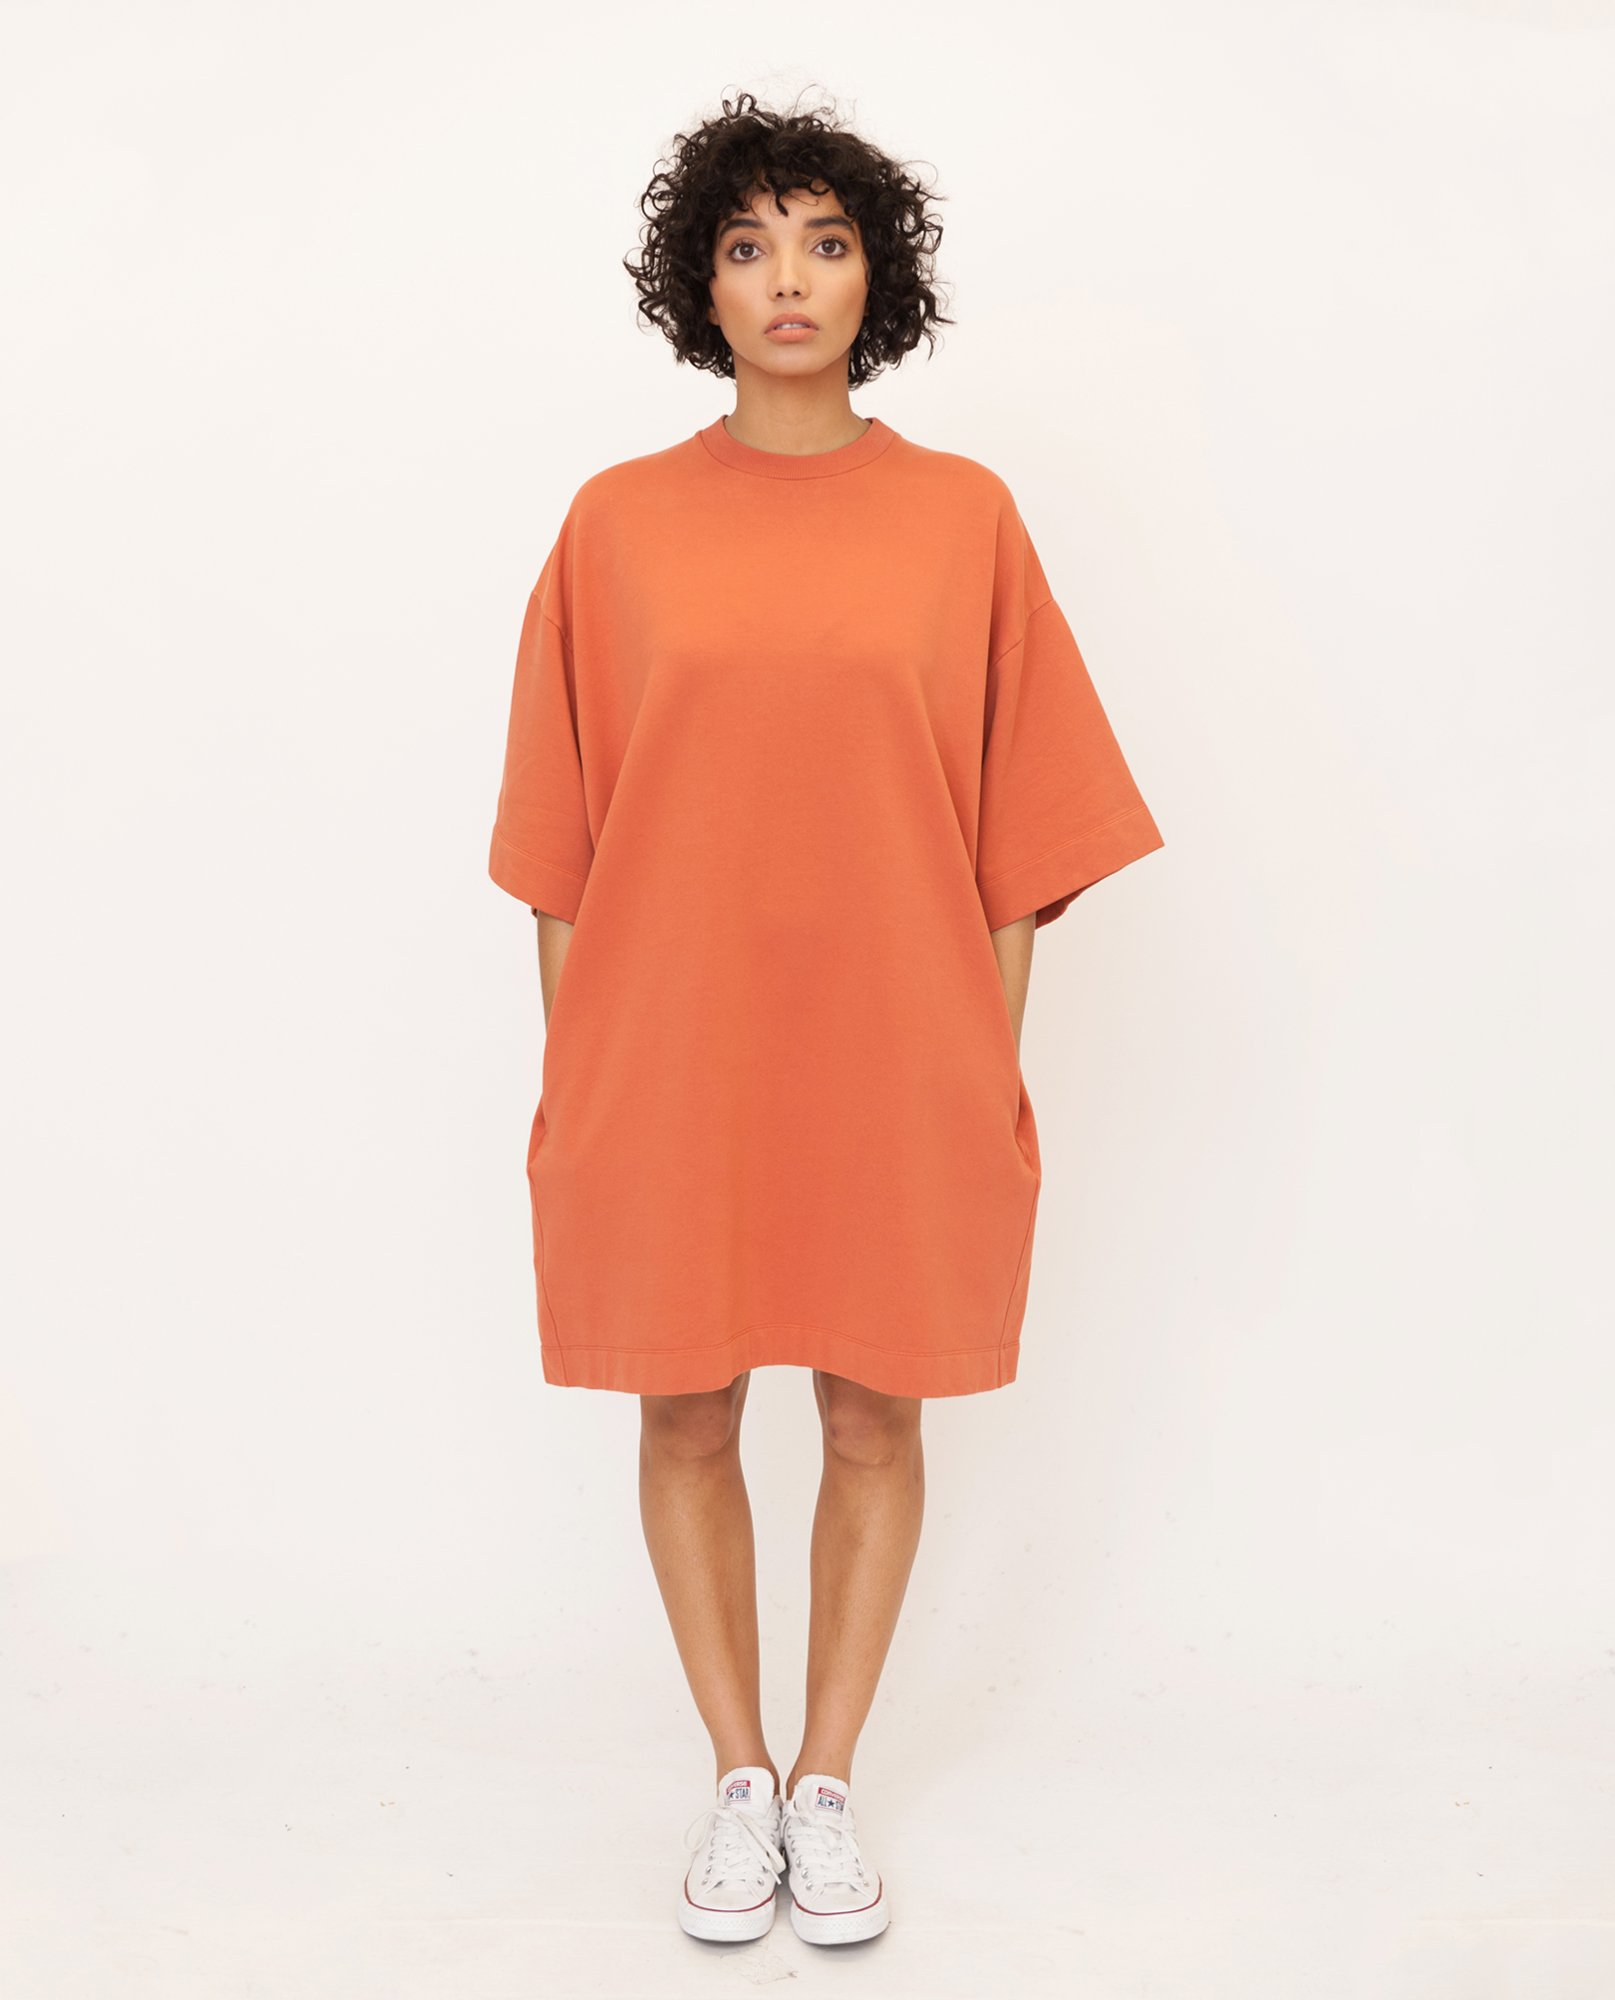 FRANCIS Organic Cotton Dress In Madder from Beaumont Organic